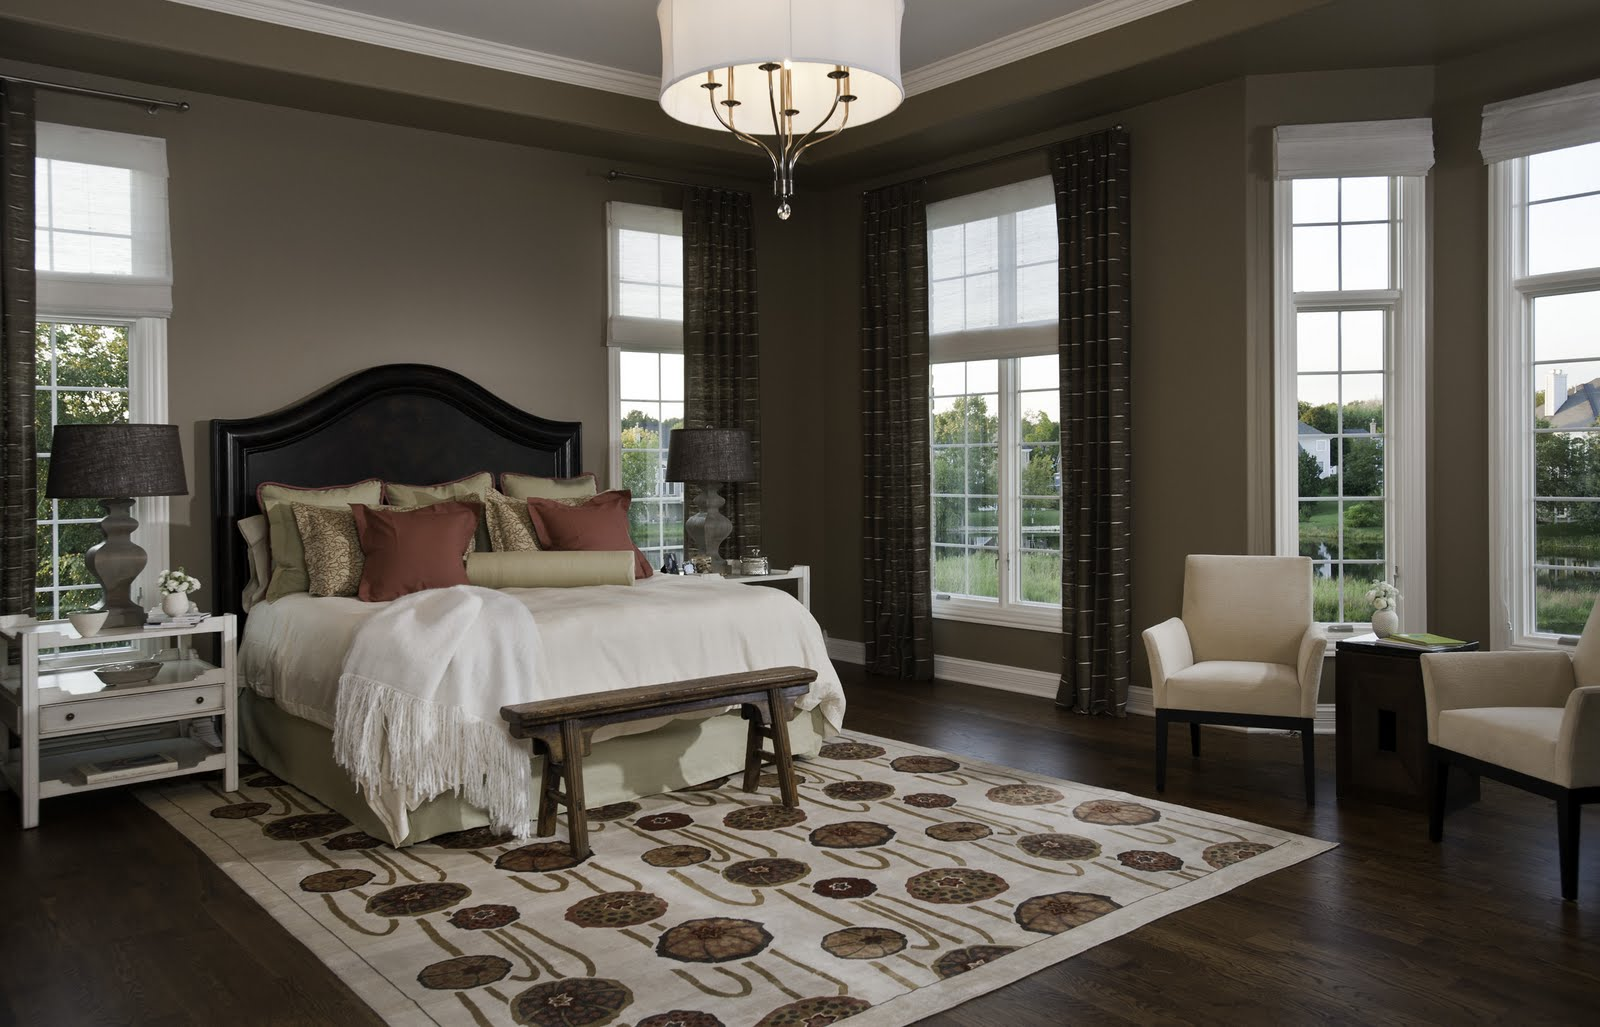 Large Bedroom Design With Window Treatment Ideas